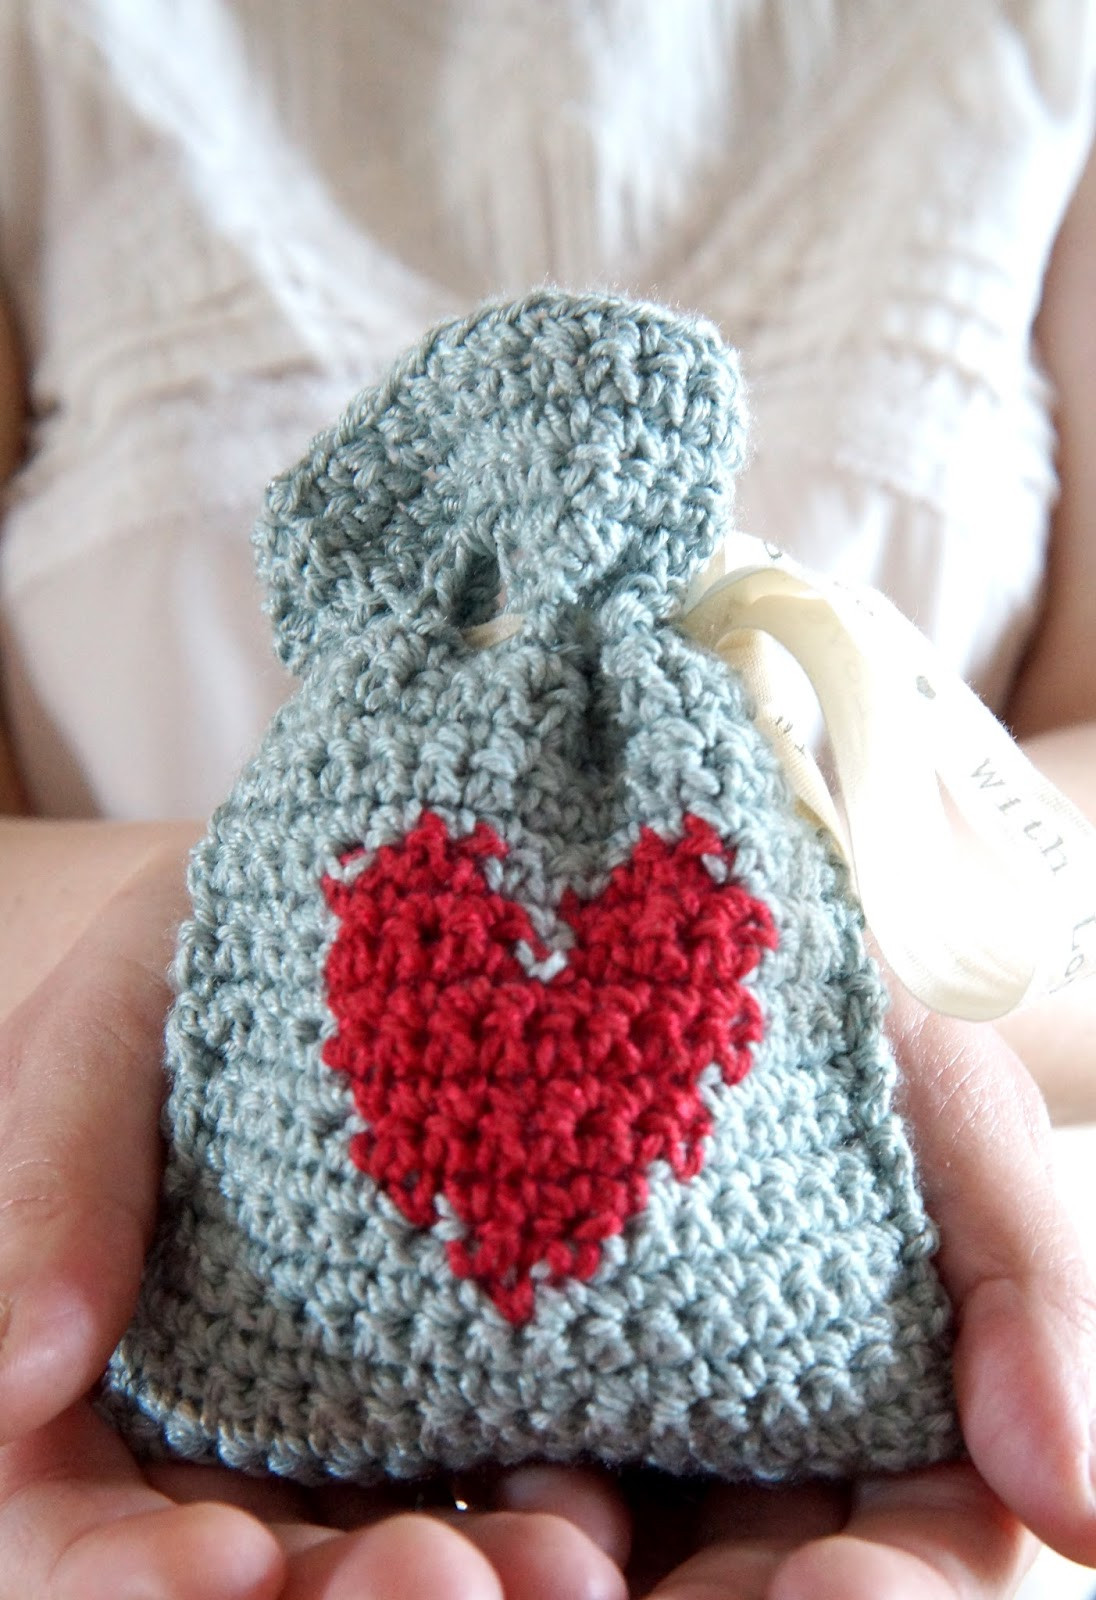 Crochet ornament Best Of Crochet Hearts Free Patterns for Valentine S Day Of Unique 43 Images Crochet ornament